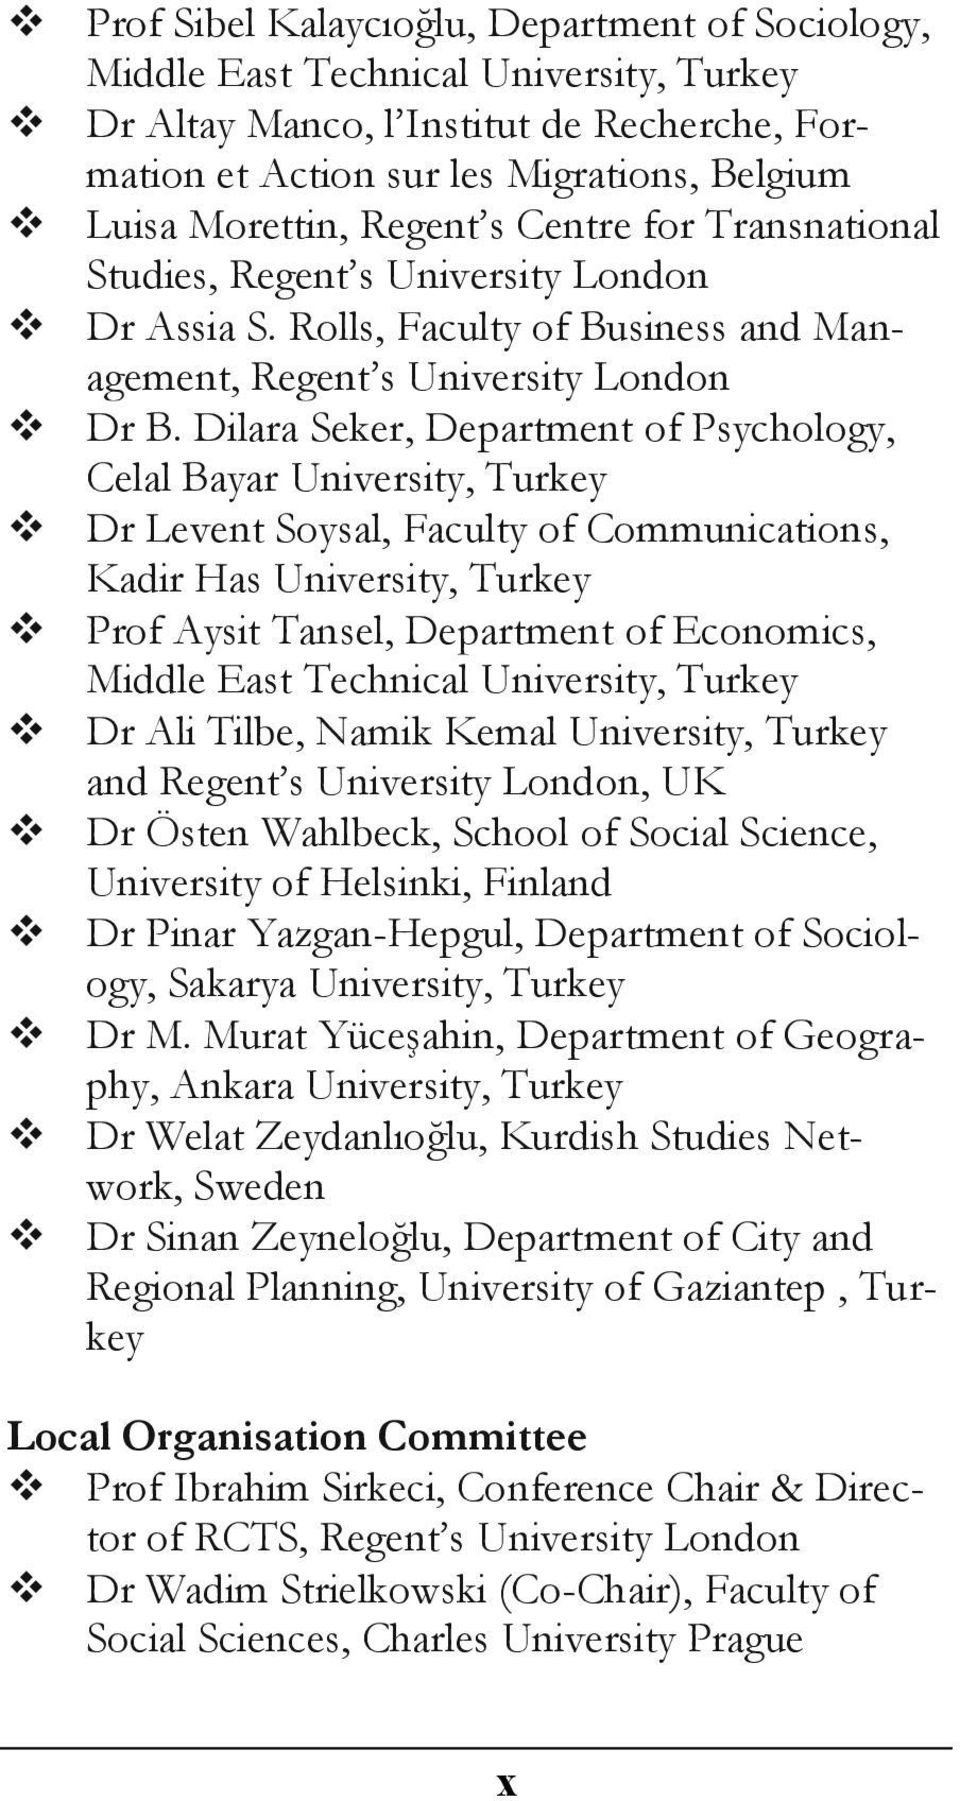 Dilara Seker, Department of Psychology, Celal Bayar University, Turkey Dr Levent Soysal, Faculty of Communications, Kadir Has University, Turkey Prof Aysit Tansel, Department of Economics, Middle